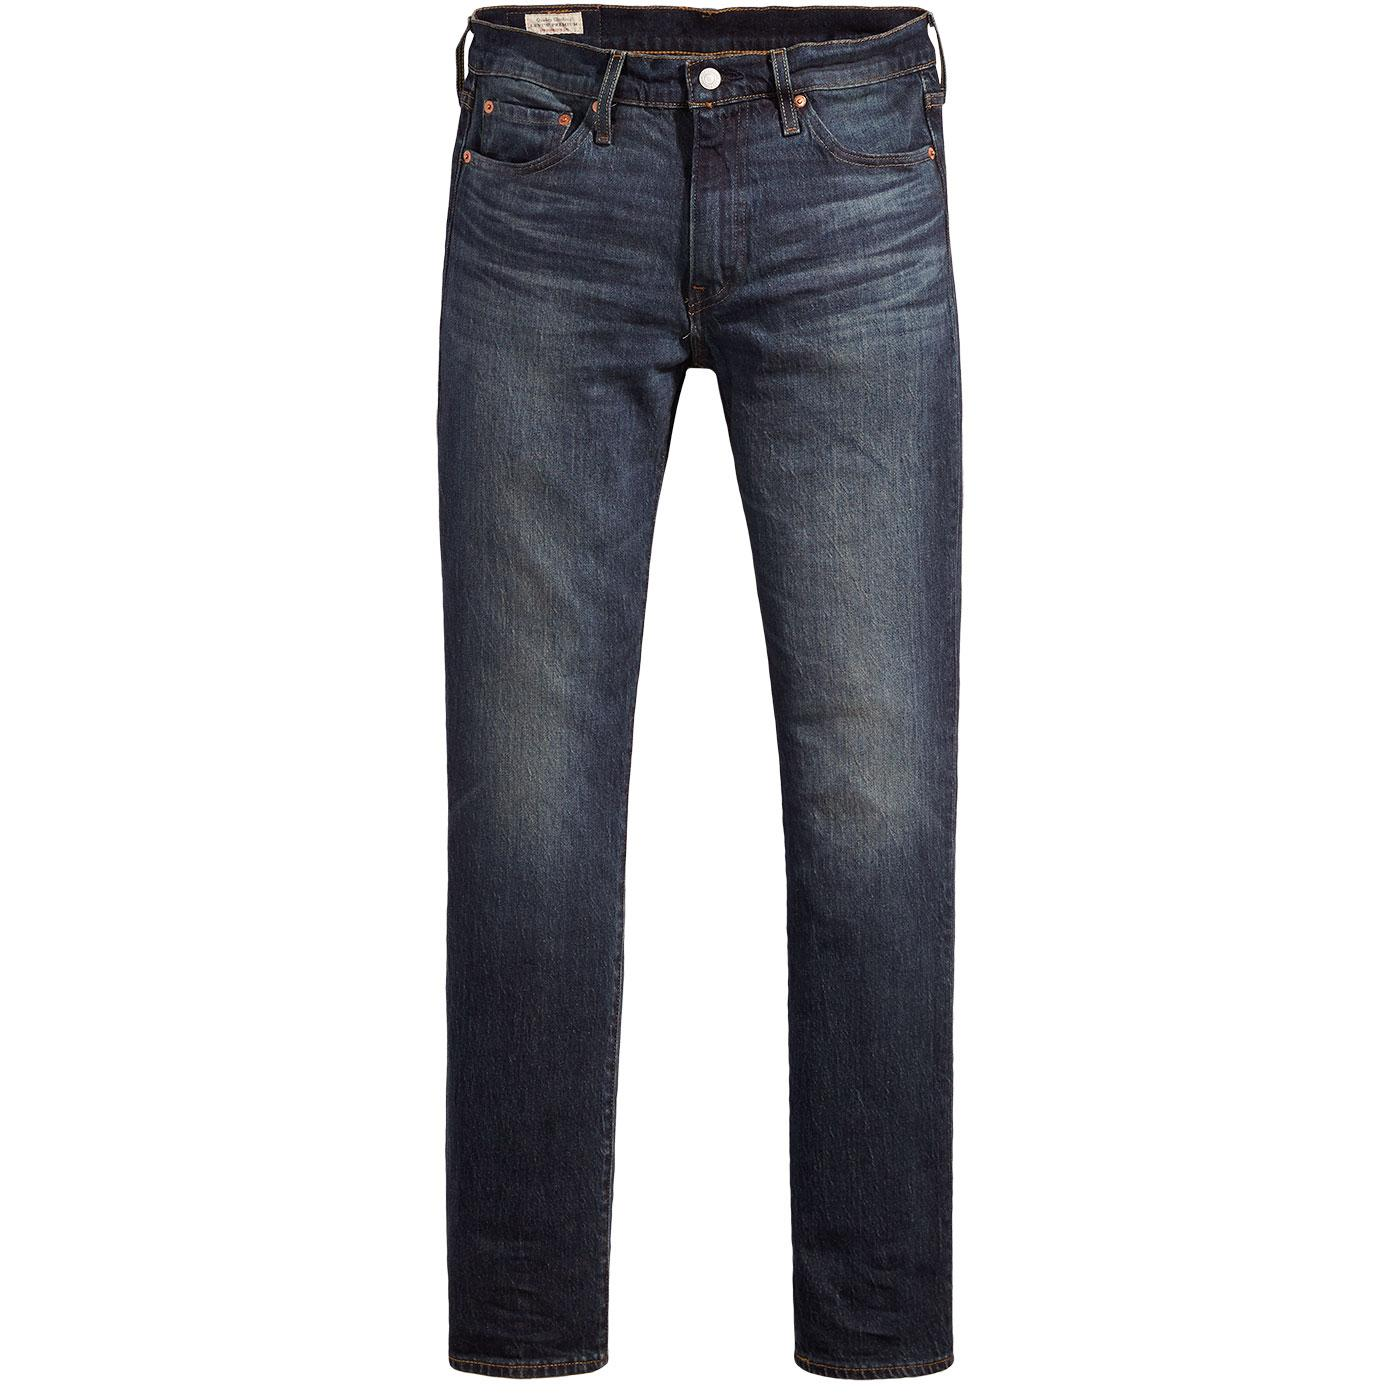 LEVI'S 511 Slim Jeans (Durian Super Tint Overt)